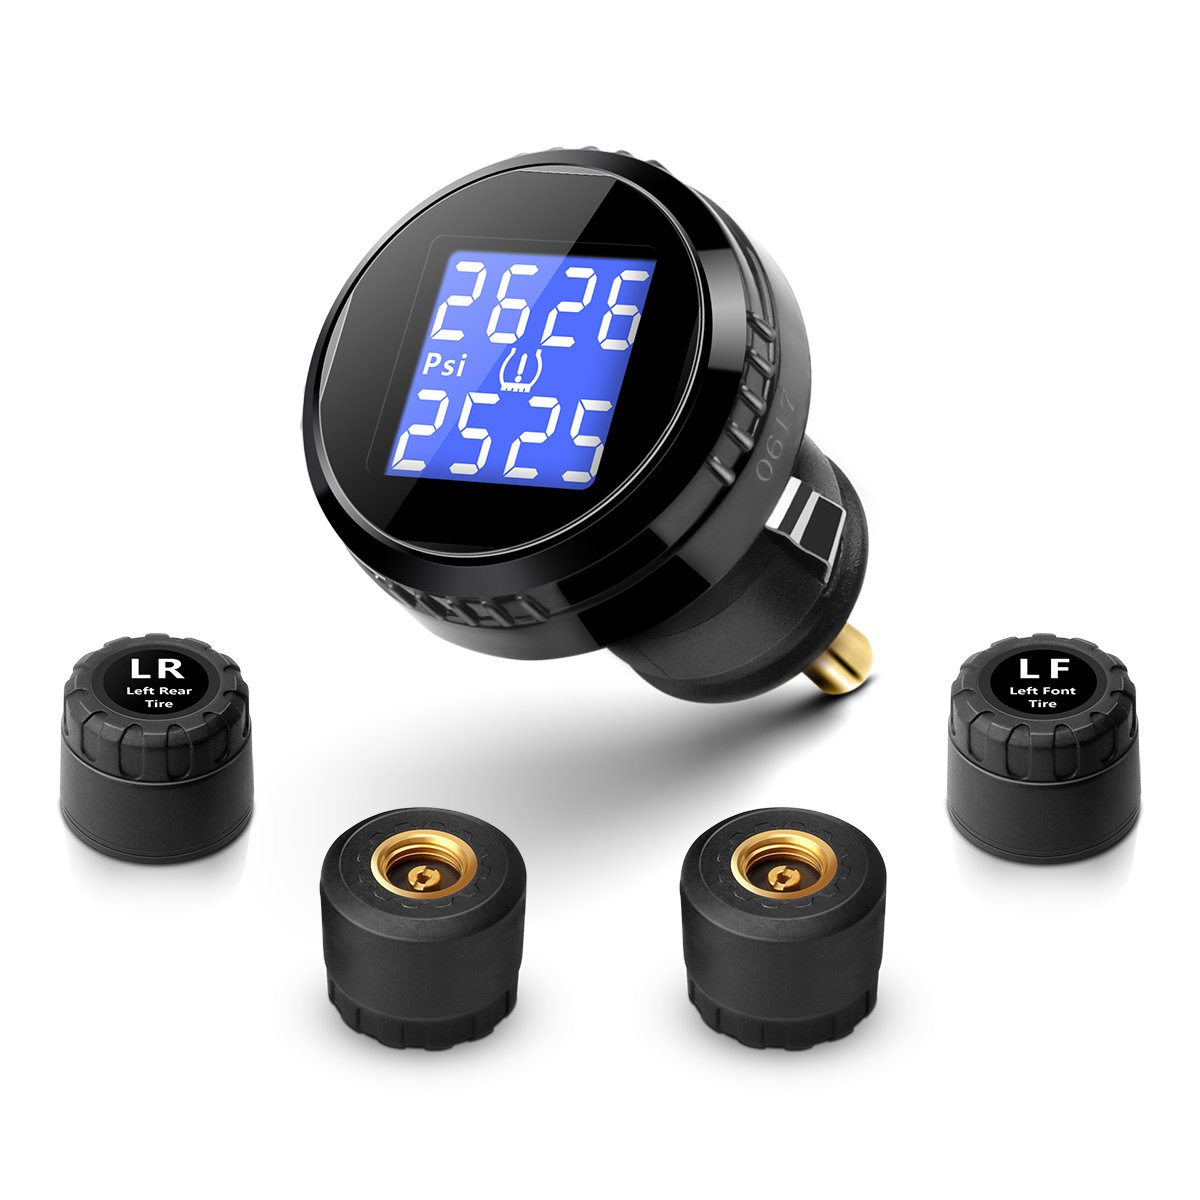 YOKARO Wireless TPMS Tire Pressure Monitoring System with Pressure and Temperature Display for Cars, Trailer, and 4 wheeled Vehicles, 4 External Cap Sensors